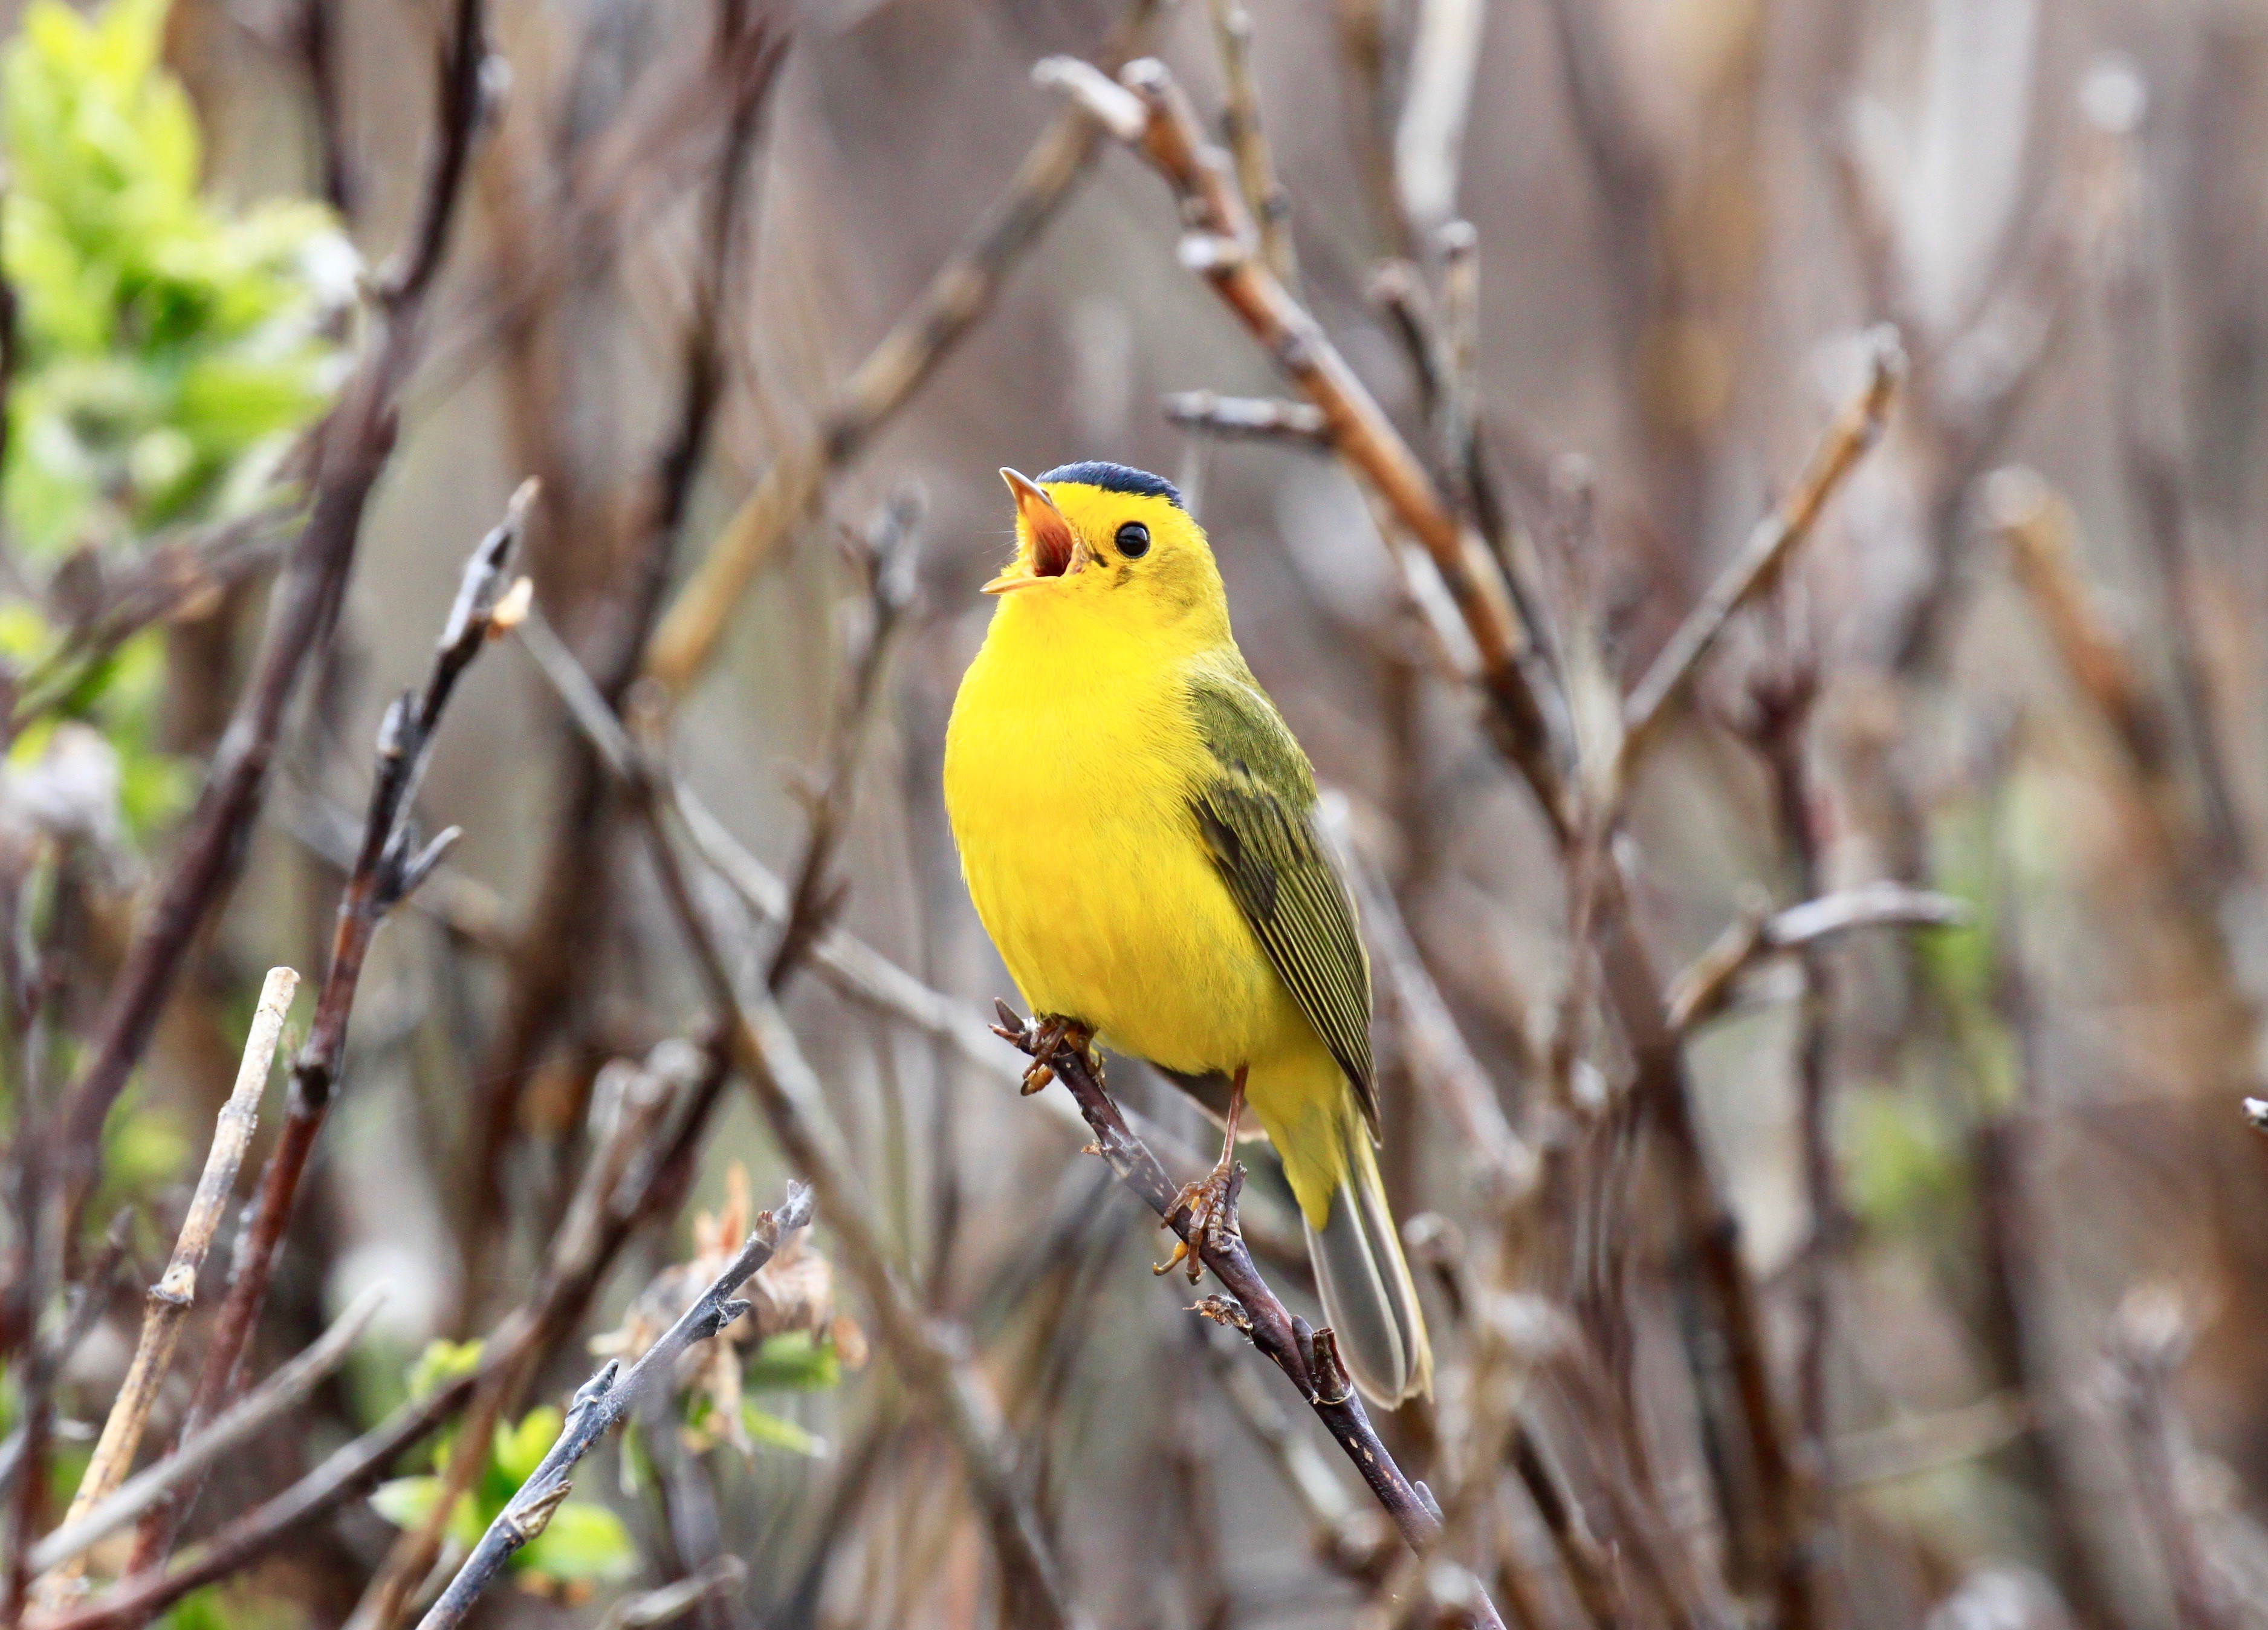 yellow wilson's warbler with a black cap singing in the bushes